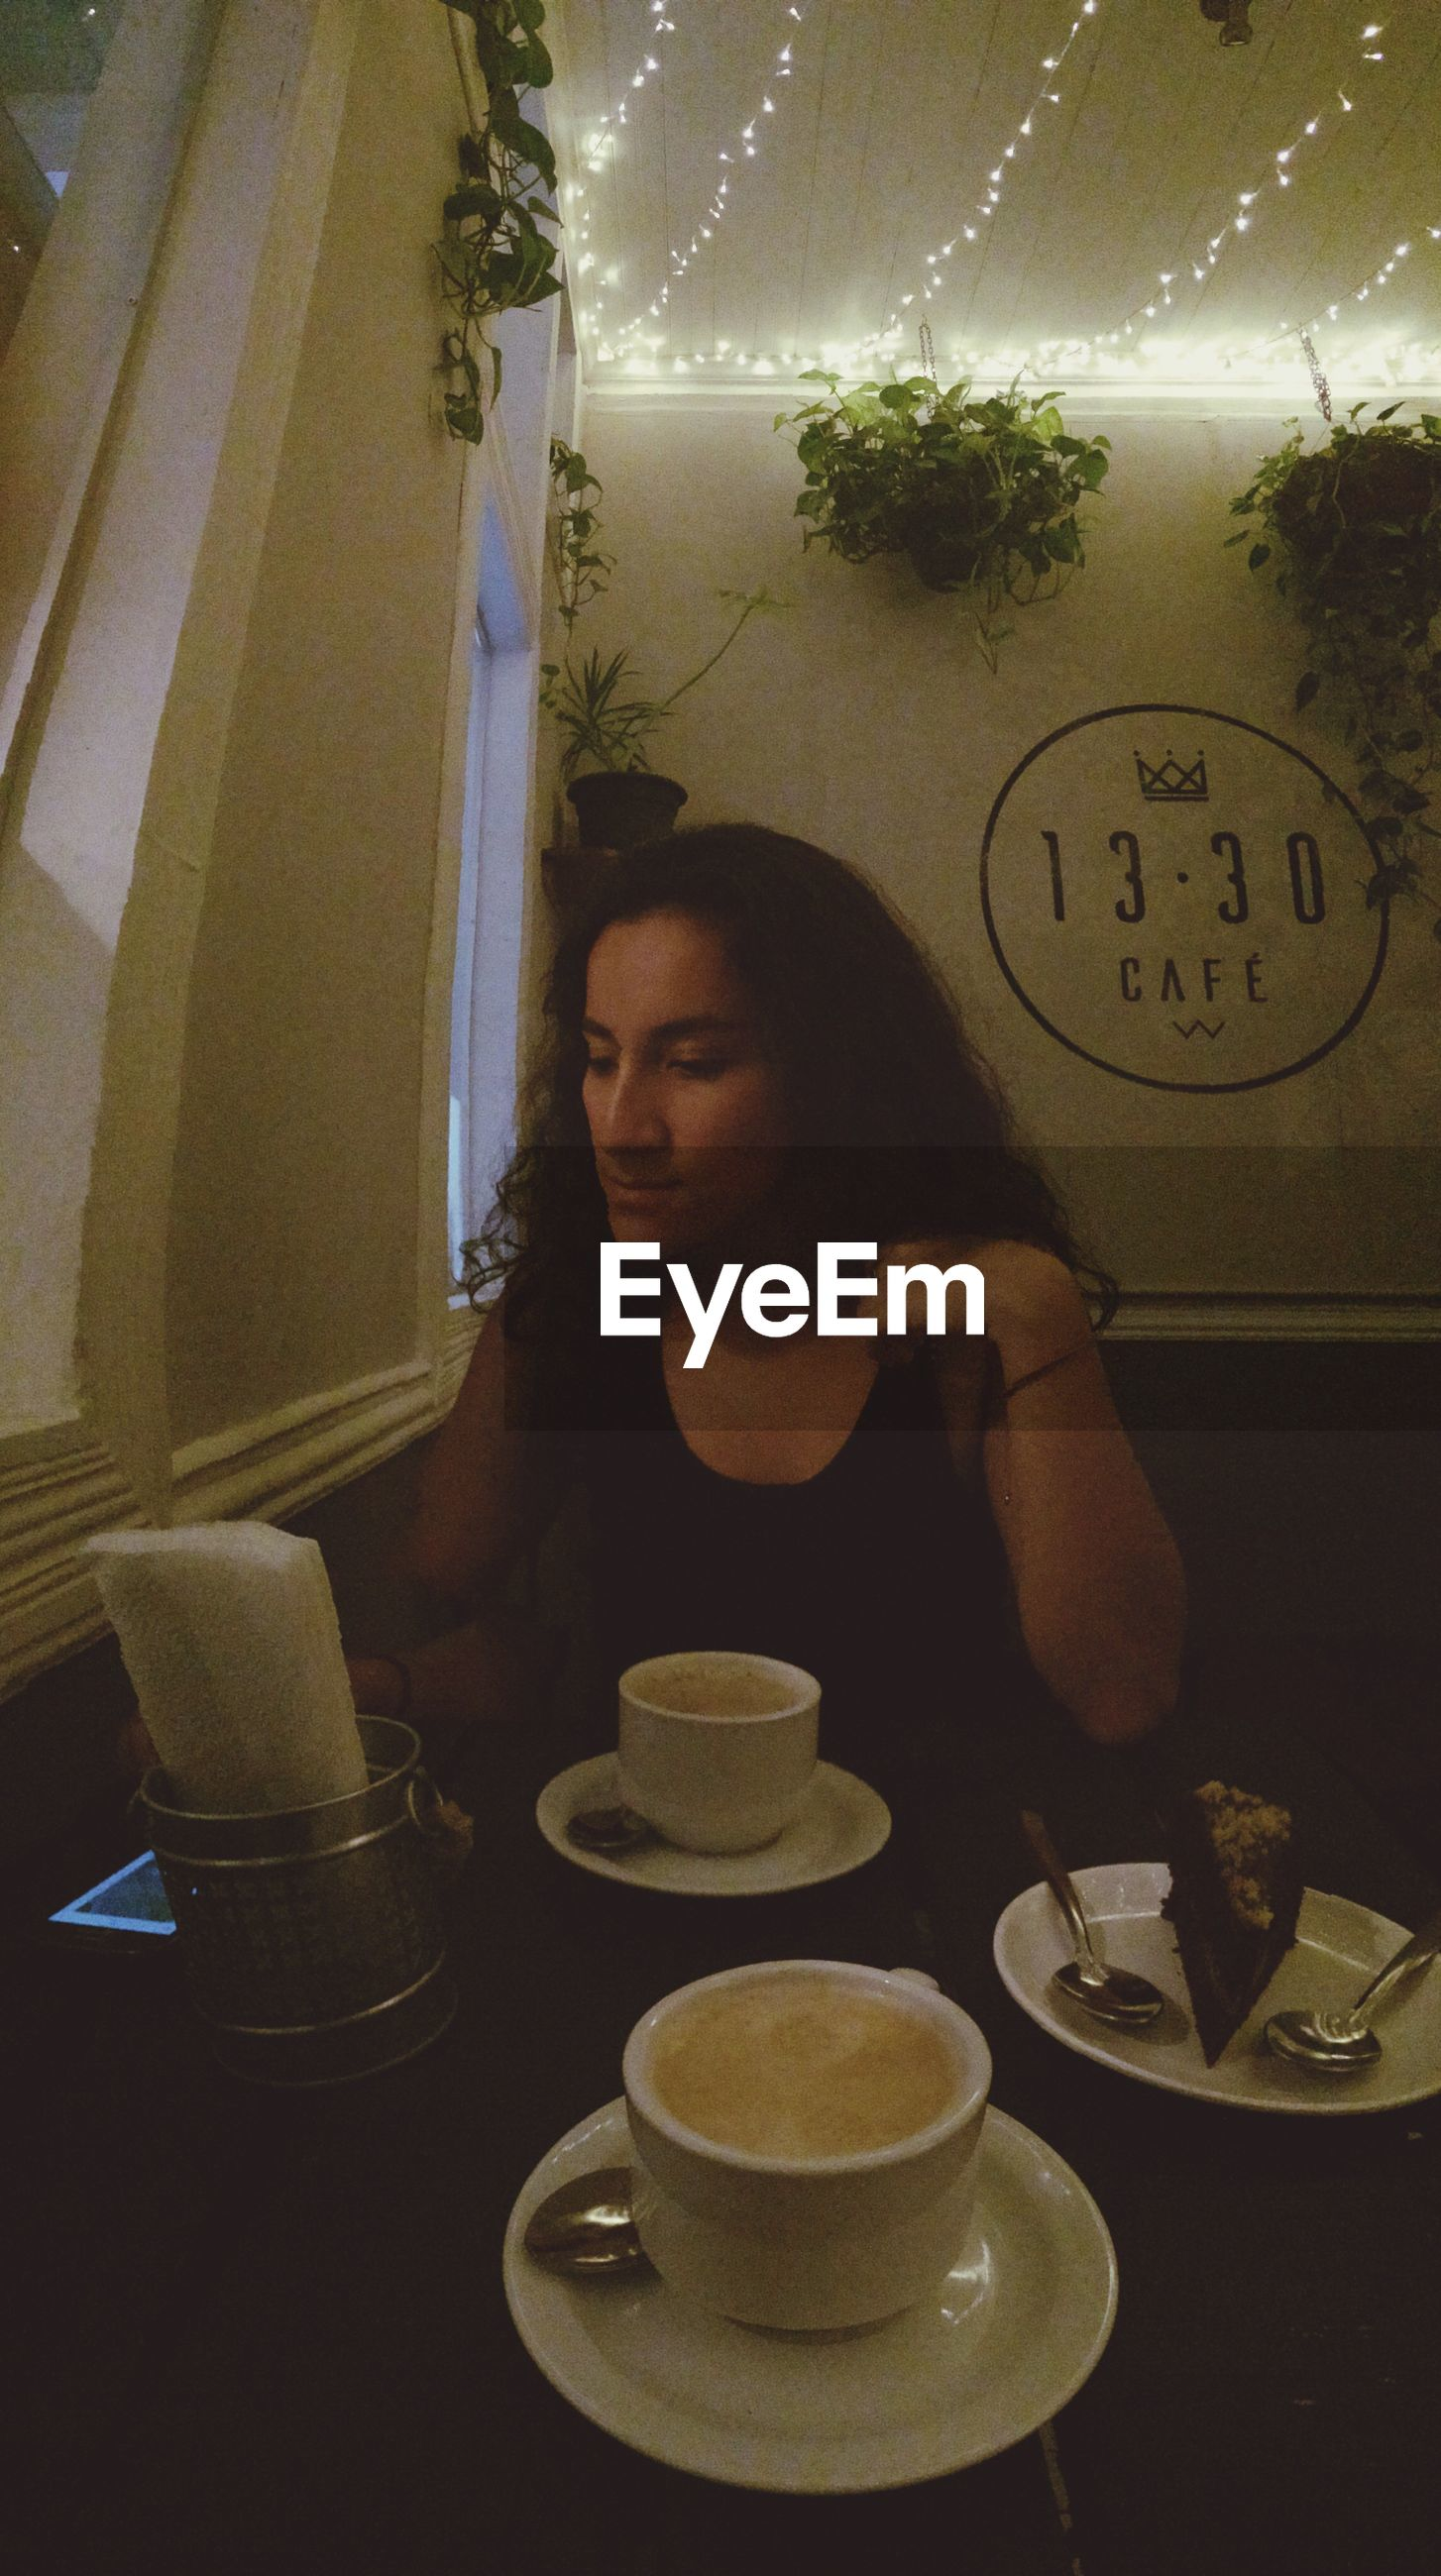 indoors, lifestyles, leisure activity, person, young adult, food and drink, communication, drink, casual clothing, table, holding, front view, sitting, headshot, young women, looking at camera, restaurant, portrait